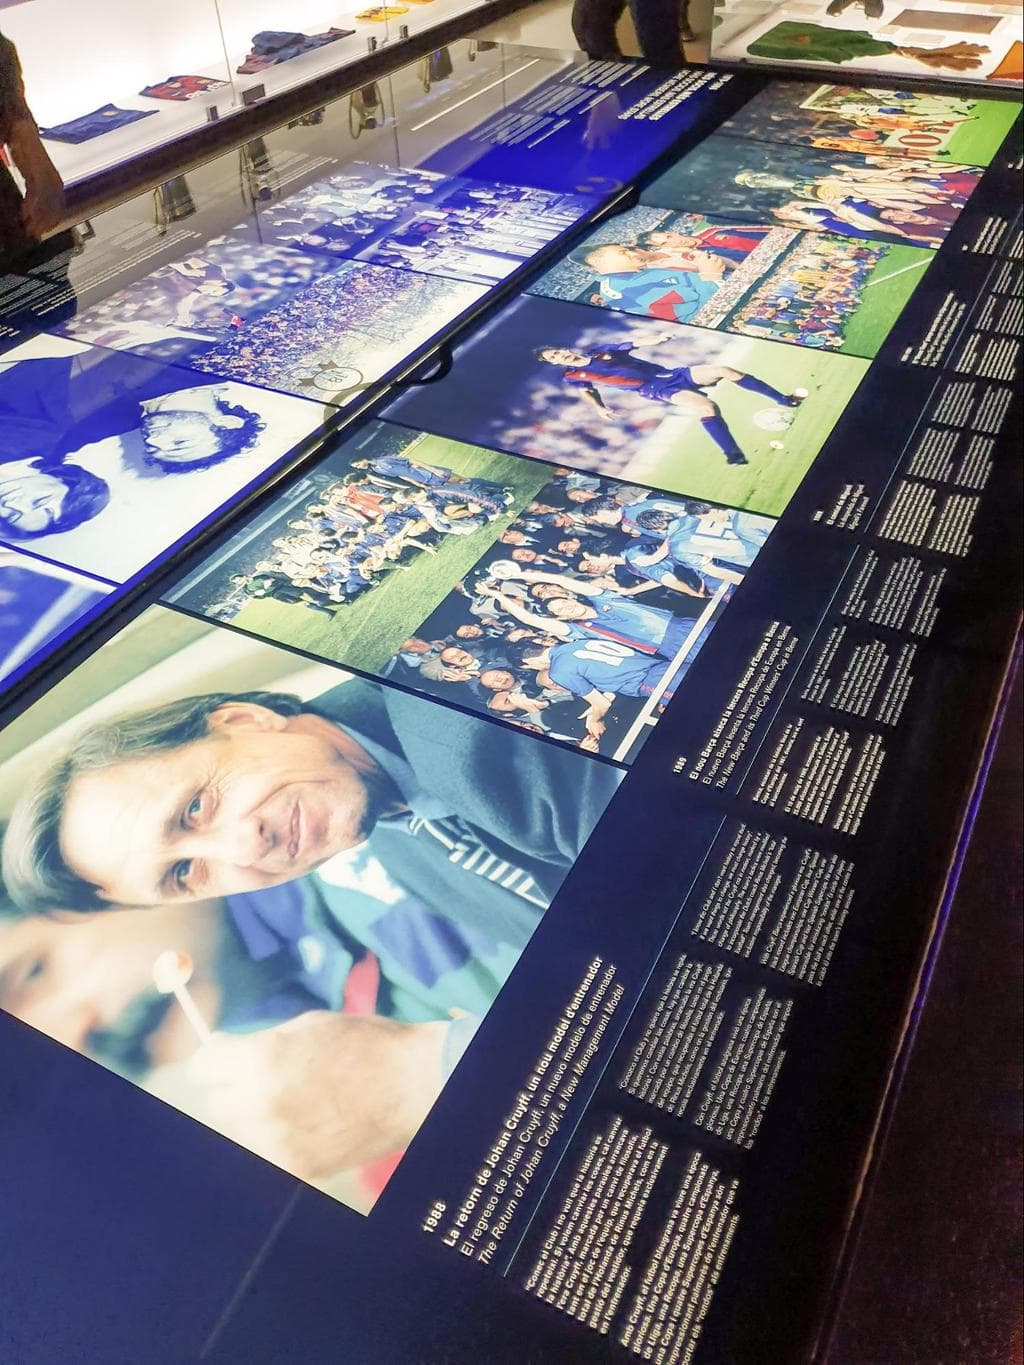 Some of the exhibits, objects and interactive screens at Camp Nou Museum 01